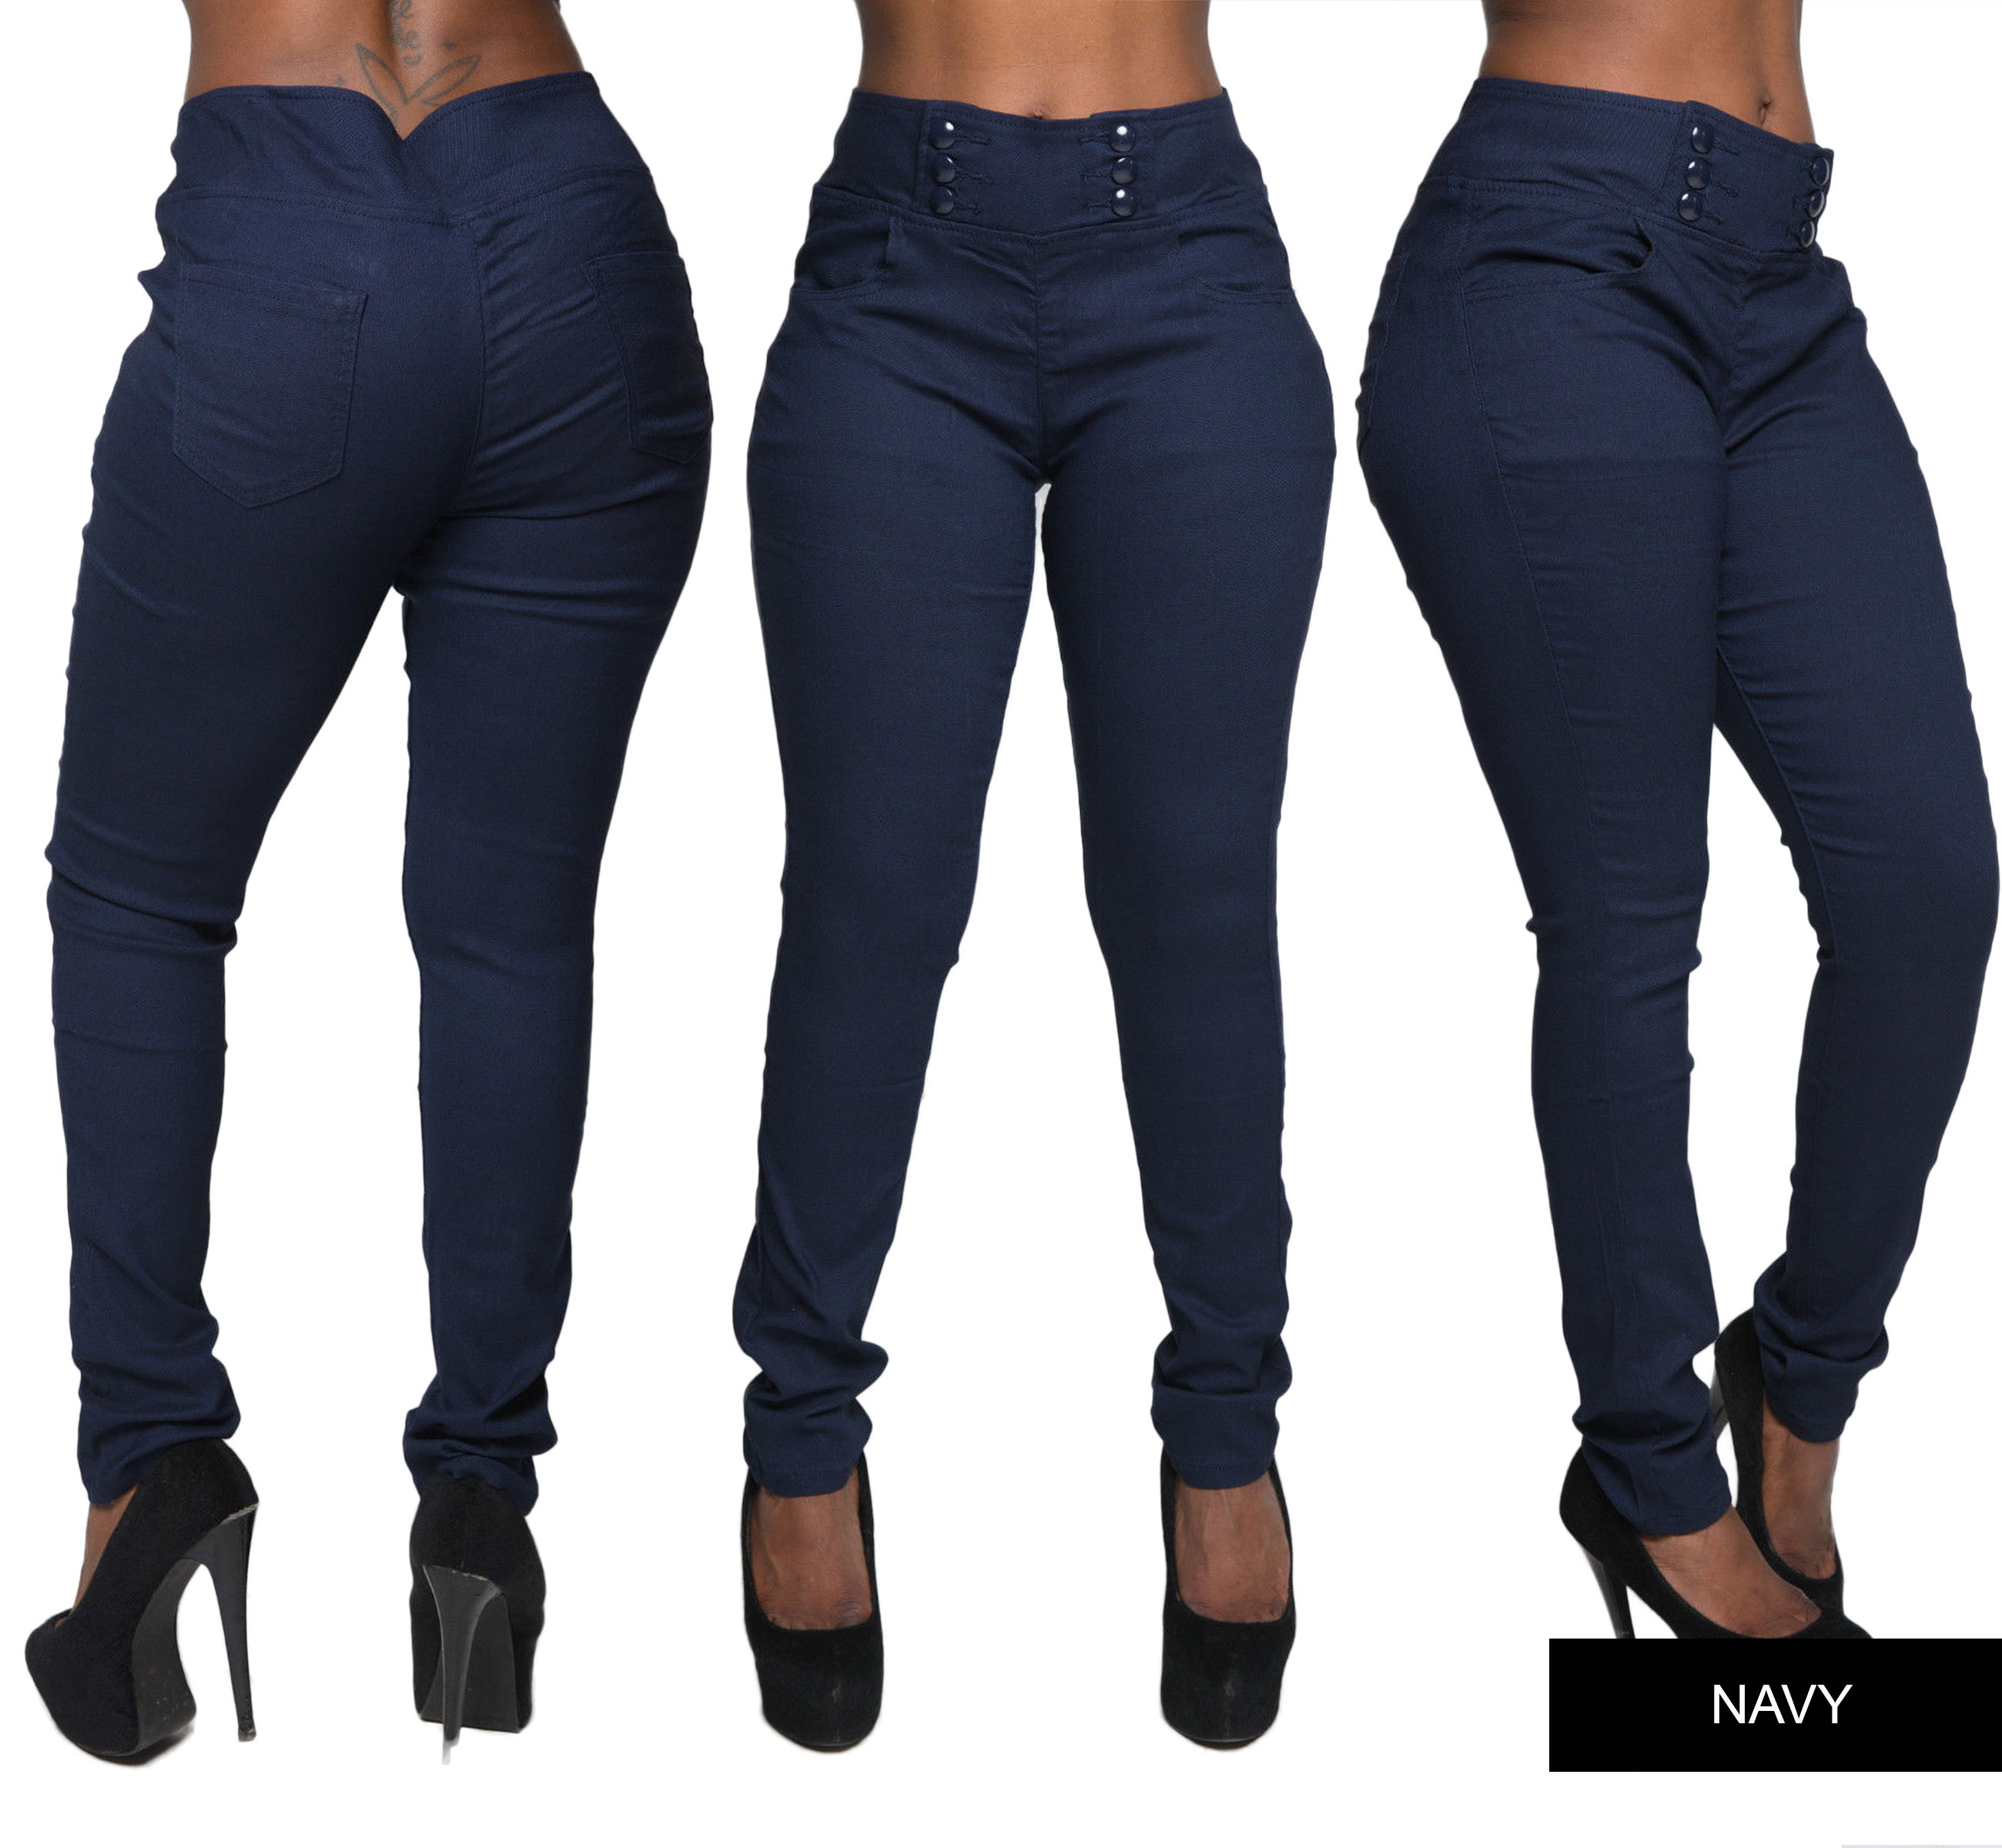 Shop Women's Plus Size Jeans and Denim at maurices. maurices has the newest seasonal trends for all shapes and sizes to enjoy. You'll be the talk of the town with your newest plus size blue jeans from maurices. Add a pair of sneakers shoes for a comfy, yet sporty look.